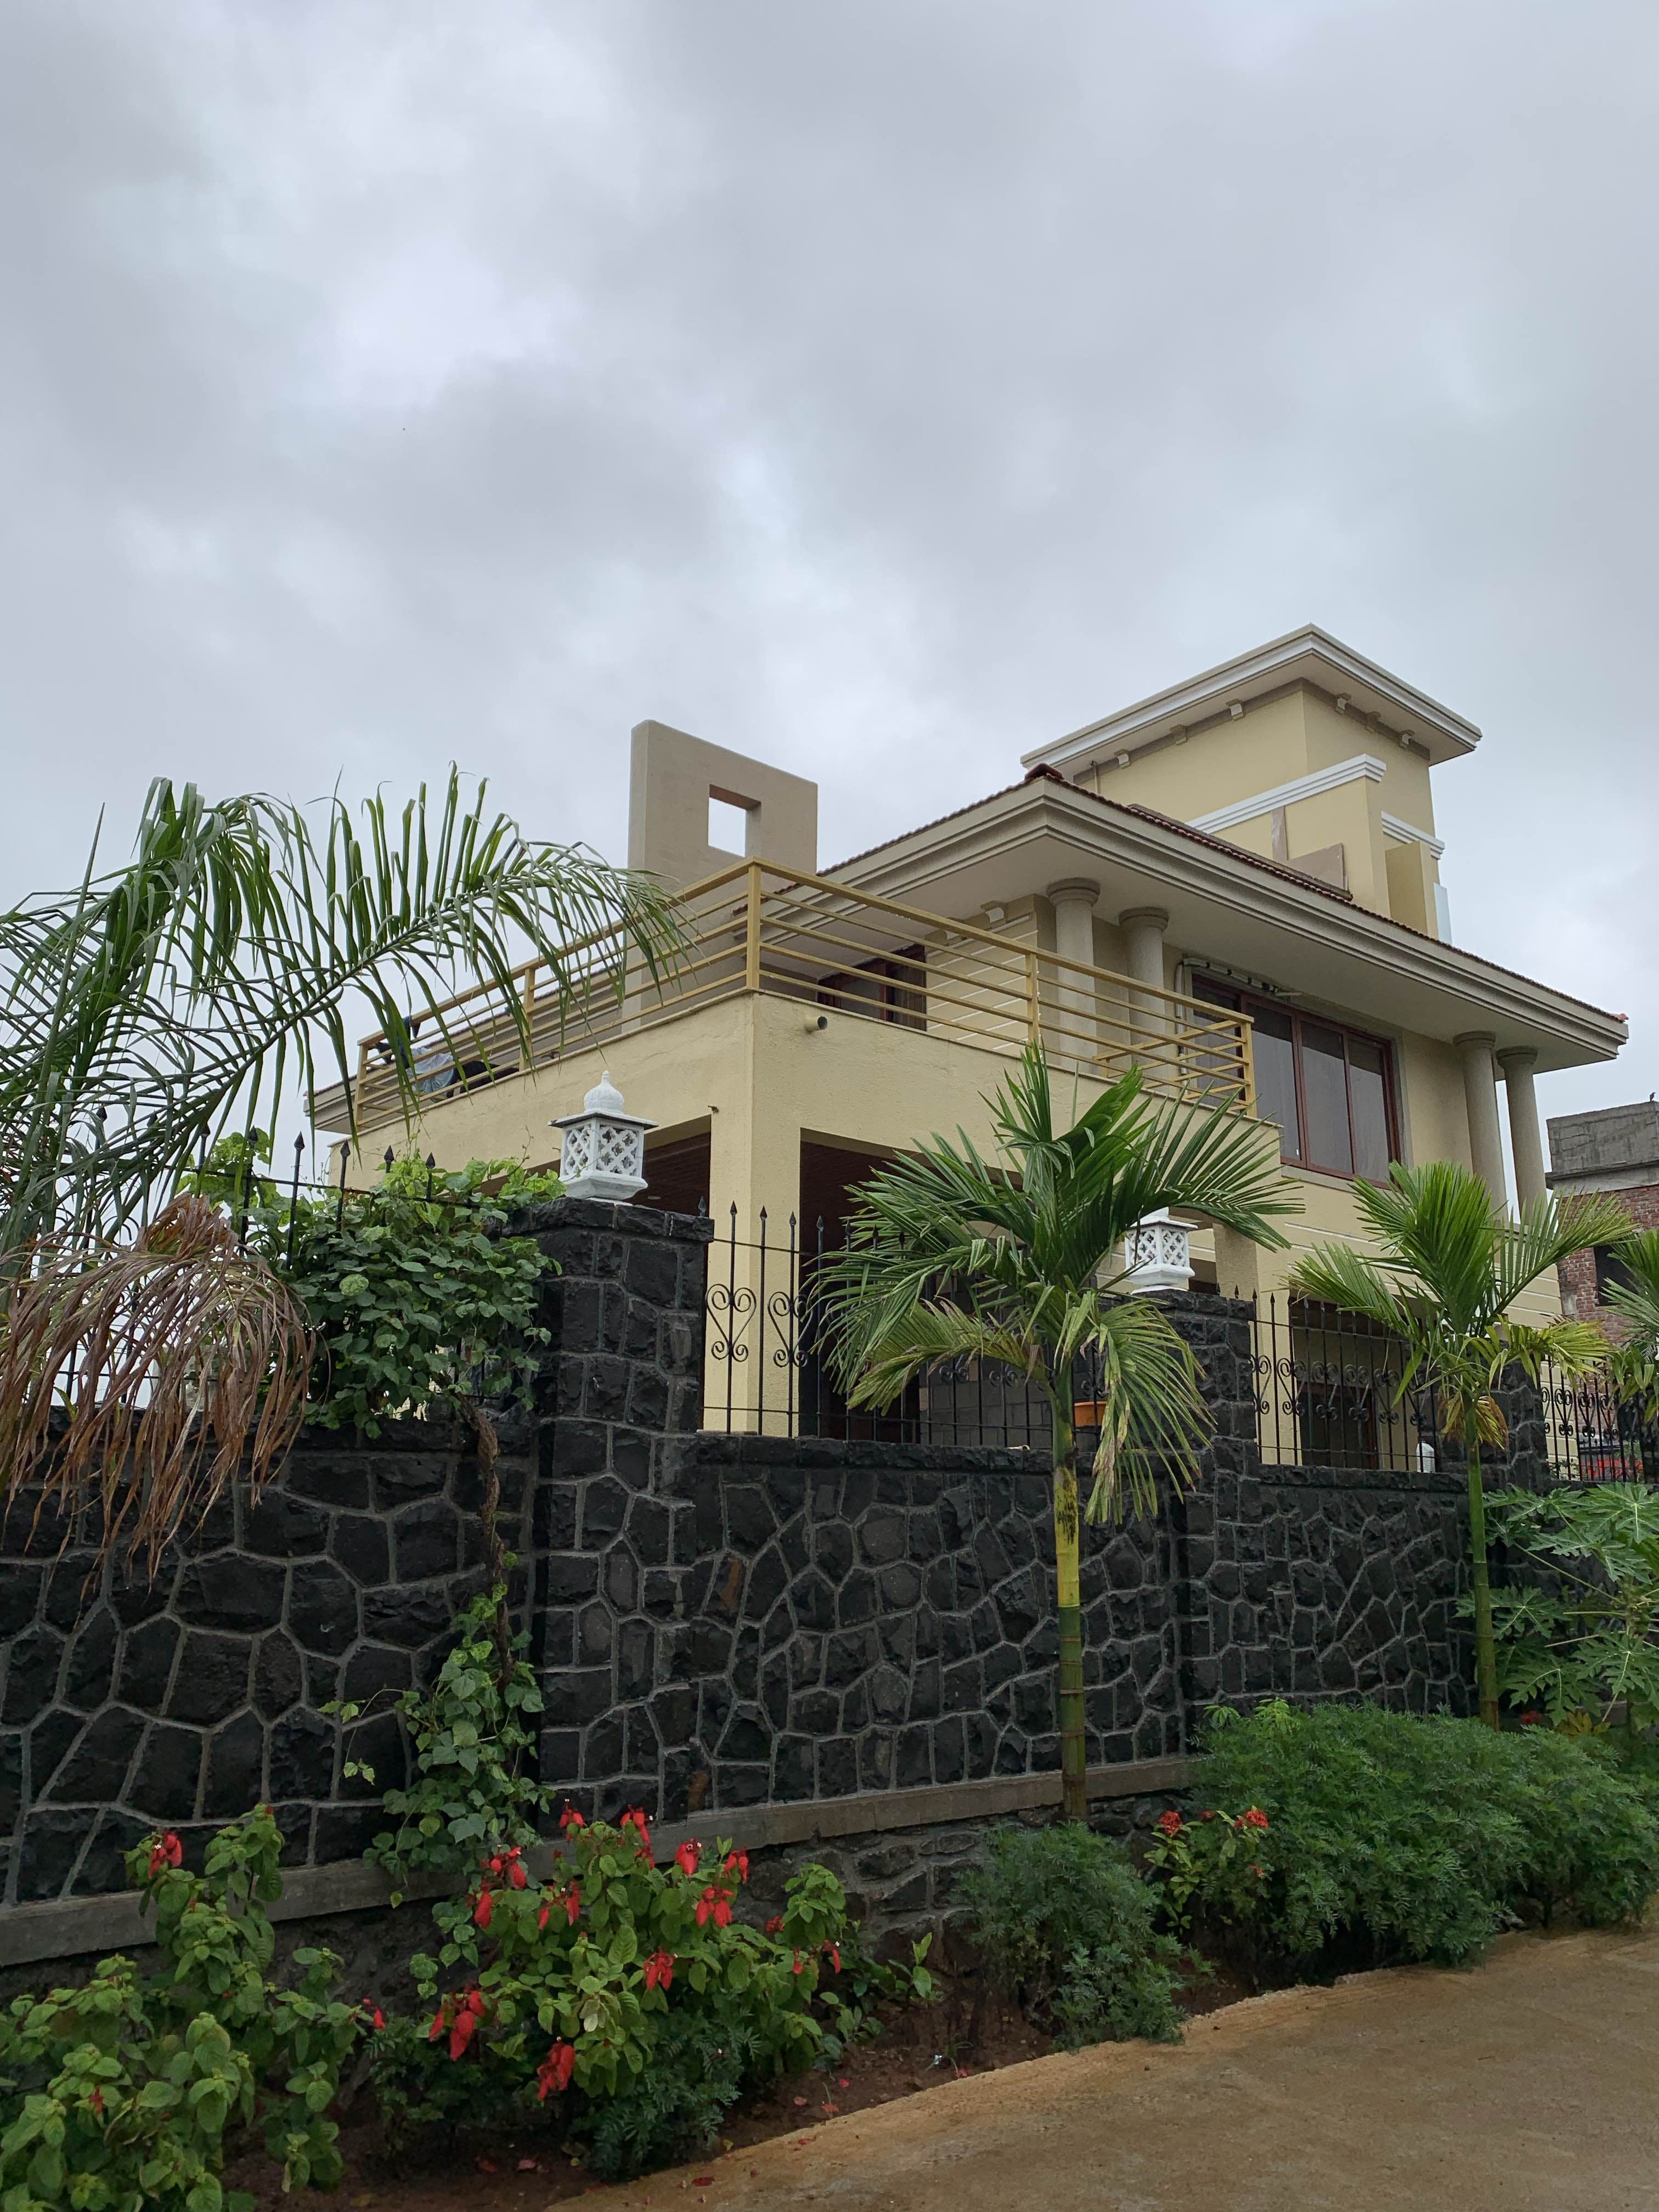 House,Property,Vegetation,Residential area,Home,Architecture,Building,Tree,Real estate,Roof